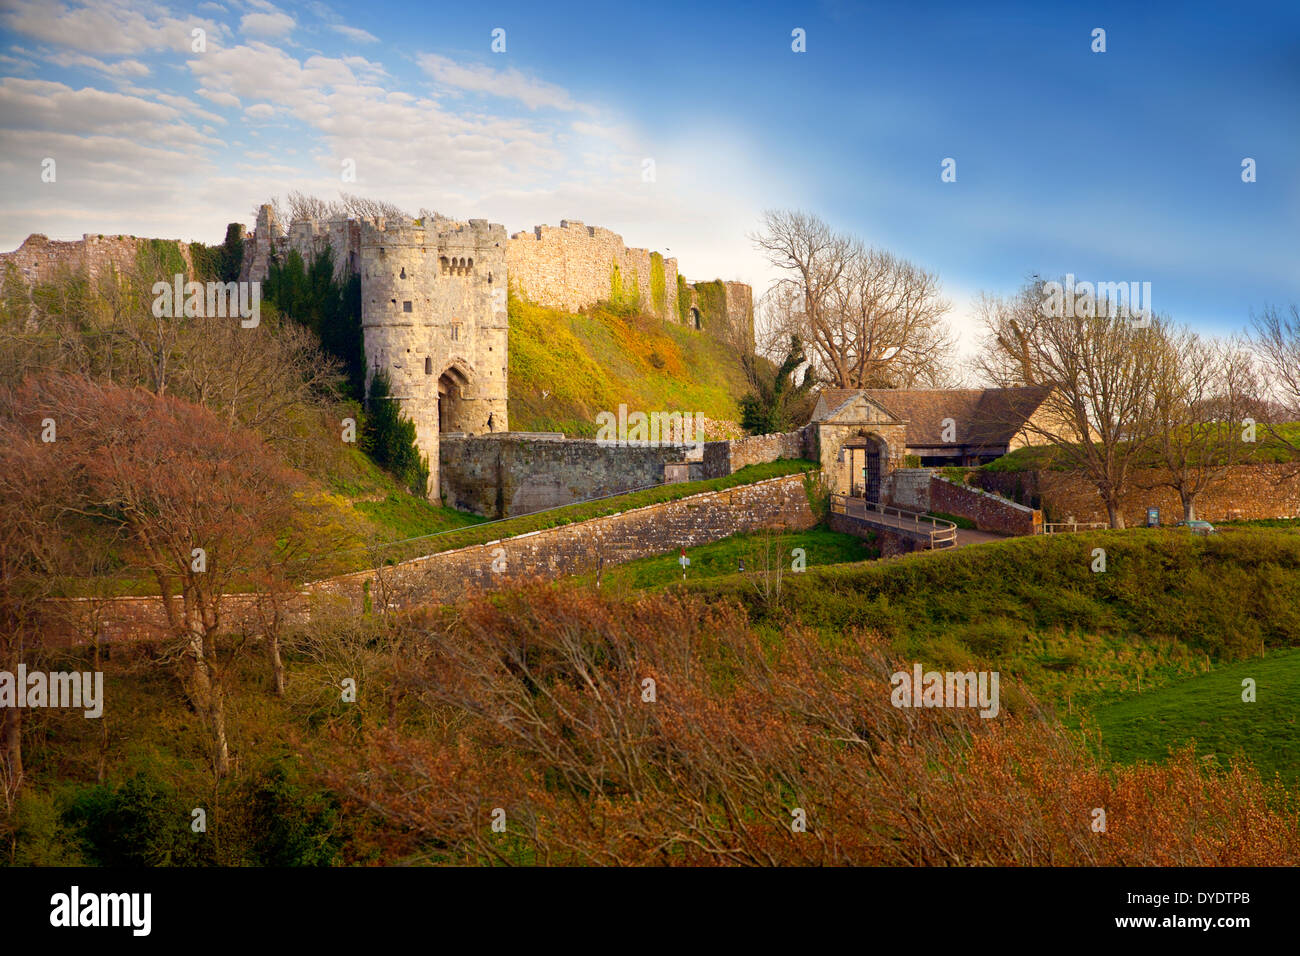 Charles the first 1st prison execution Carisbrook Carisbrooke Castle Isle of Wight England UK Stock Photo